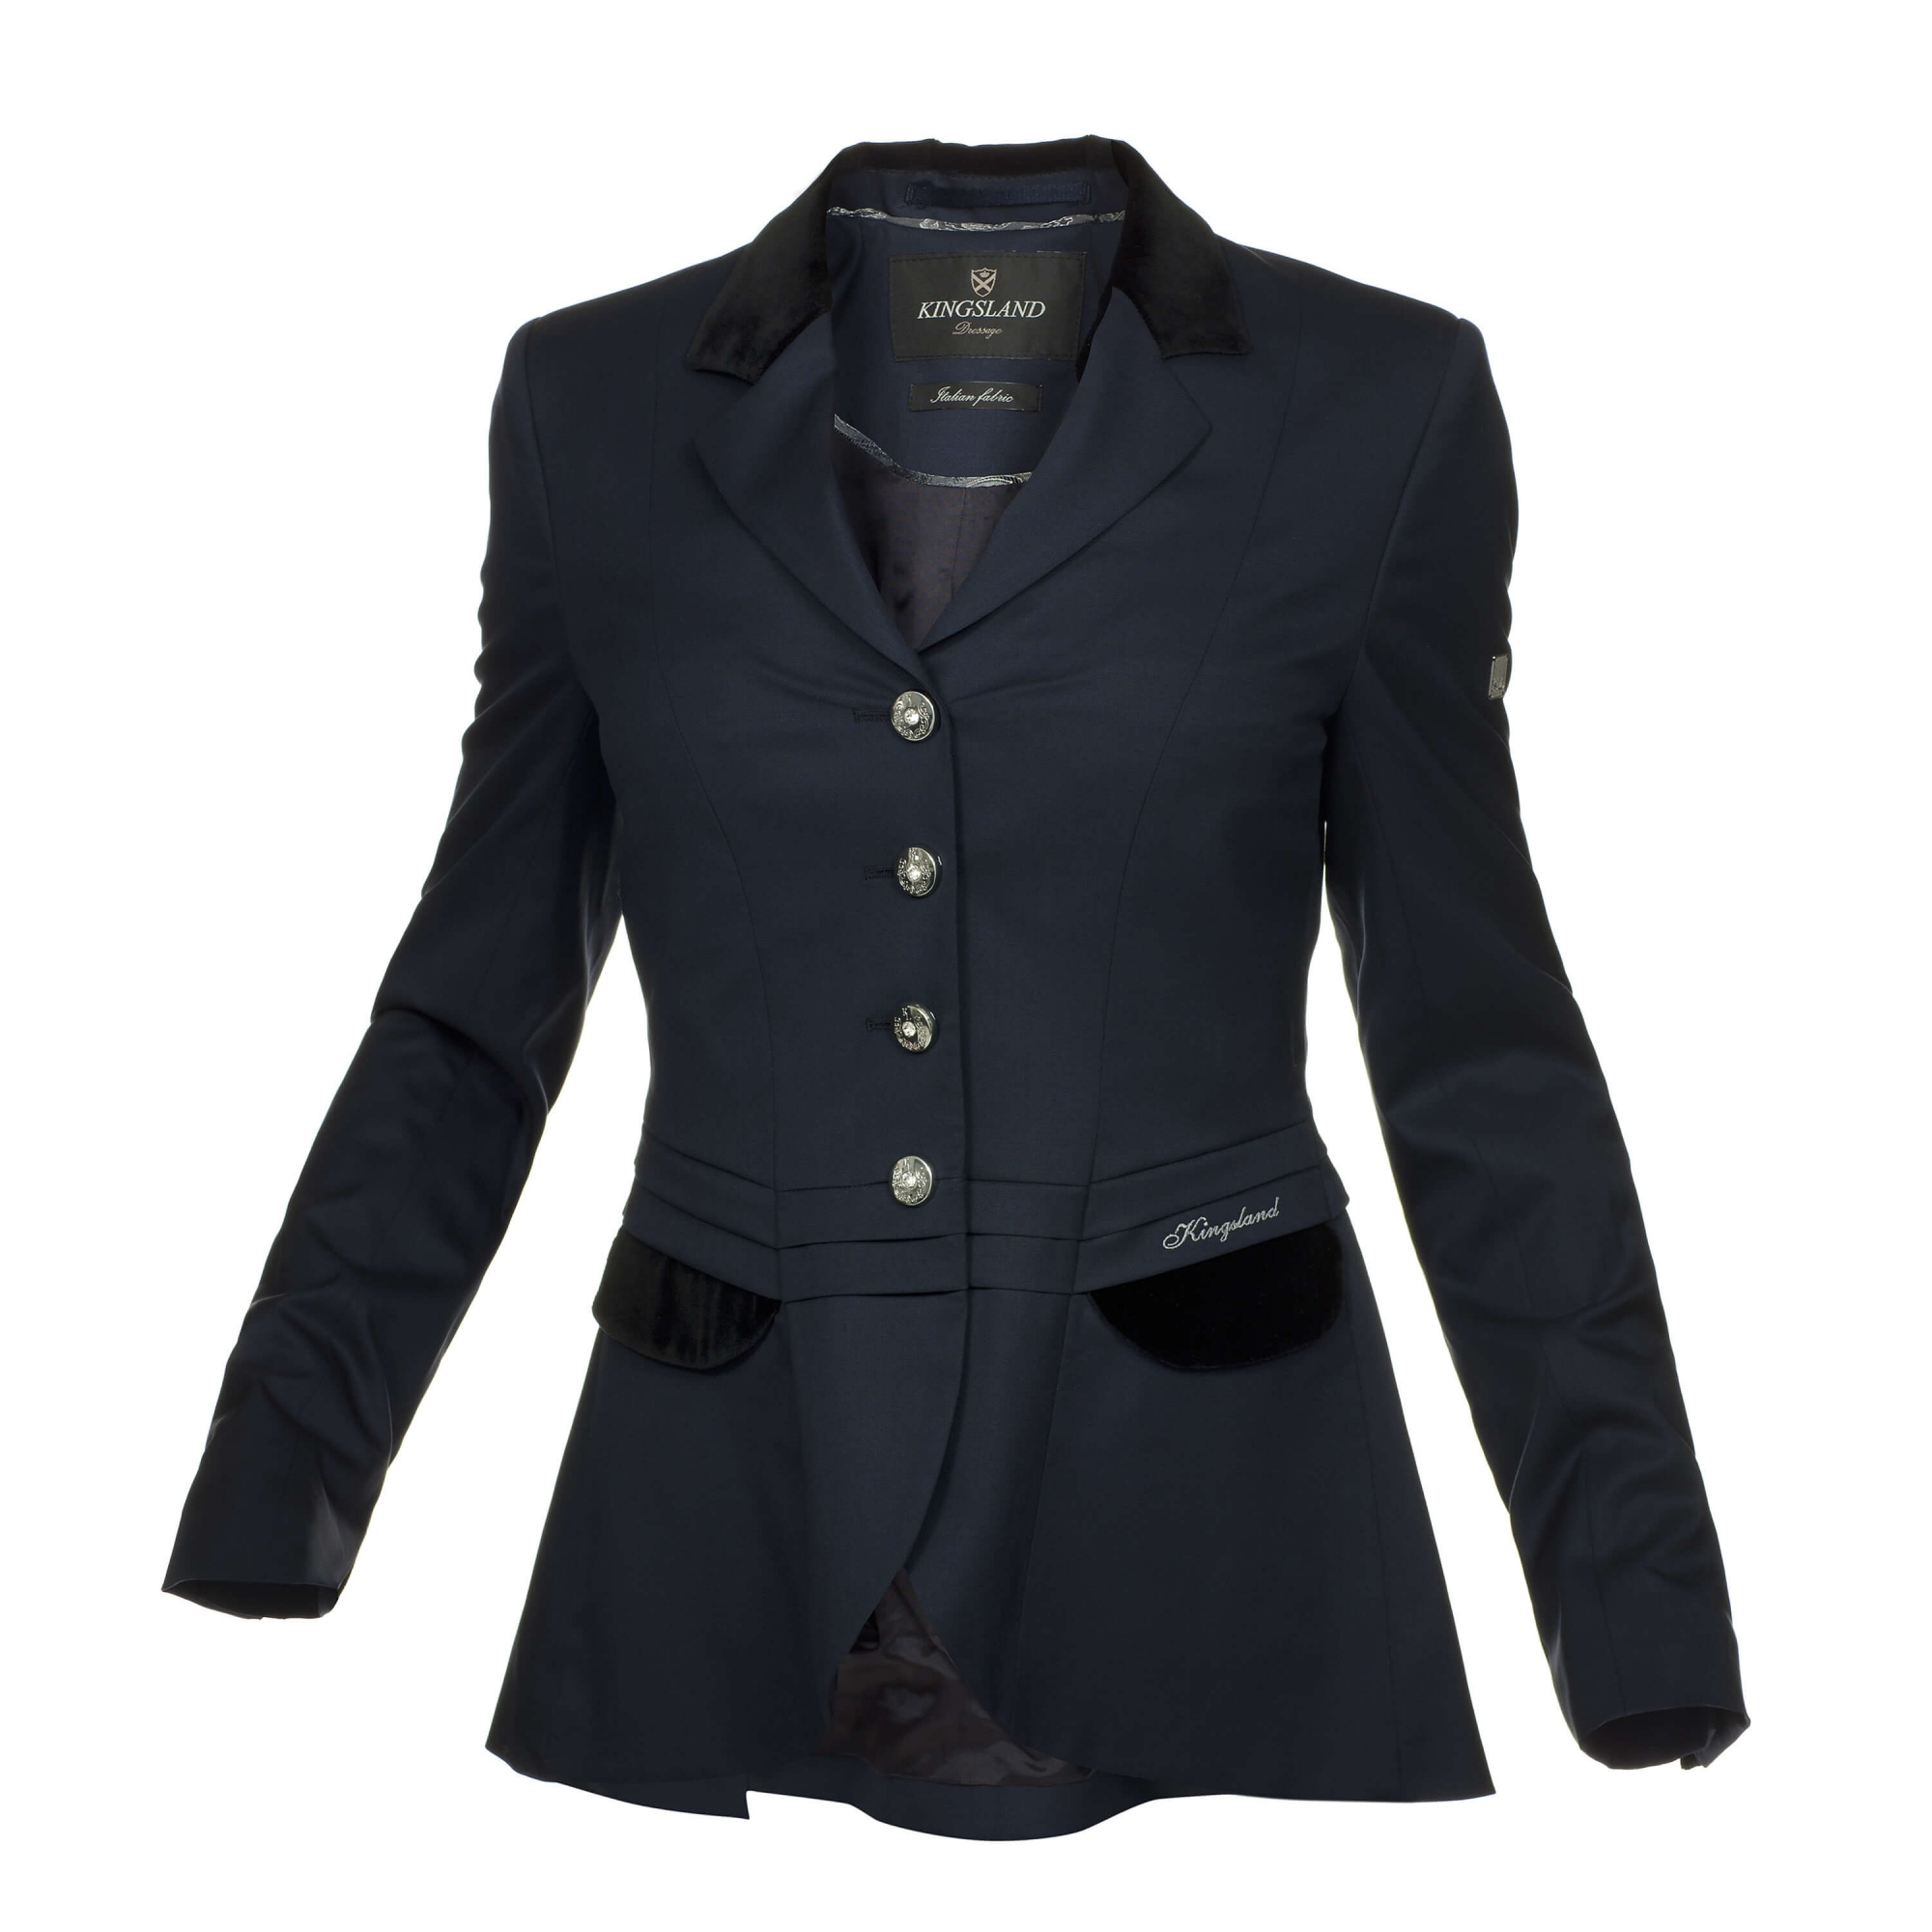 Kingsland Woolen Ladies Dressage Jacket Equishop